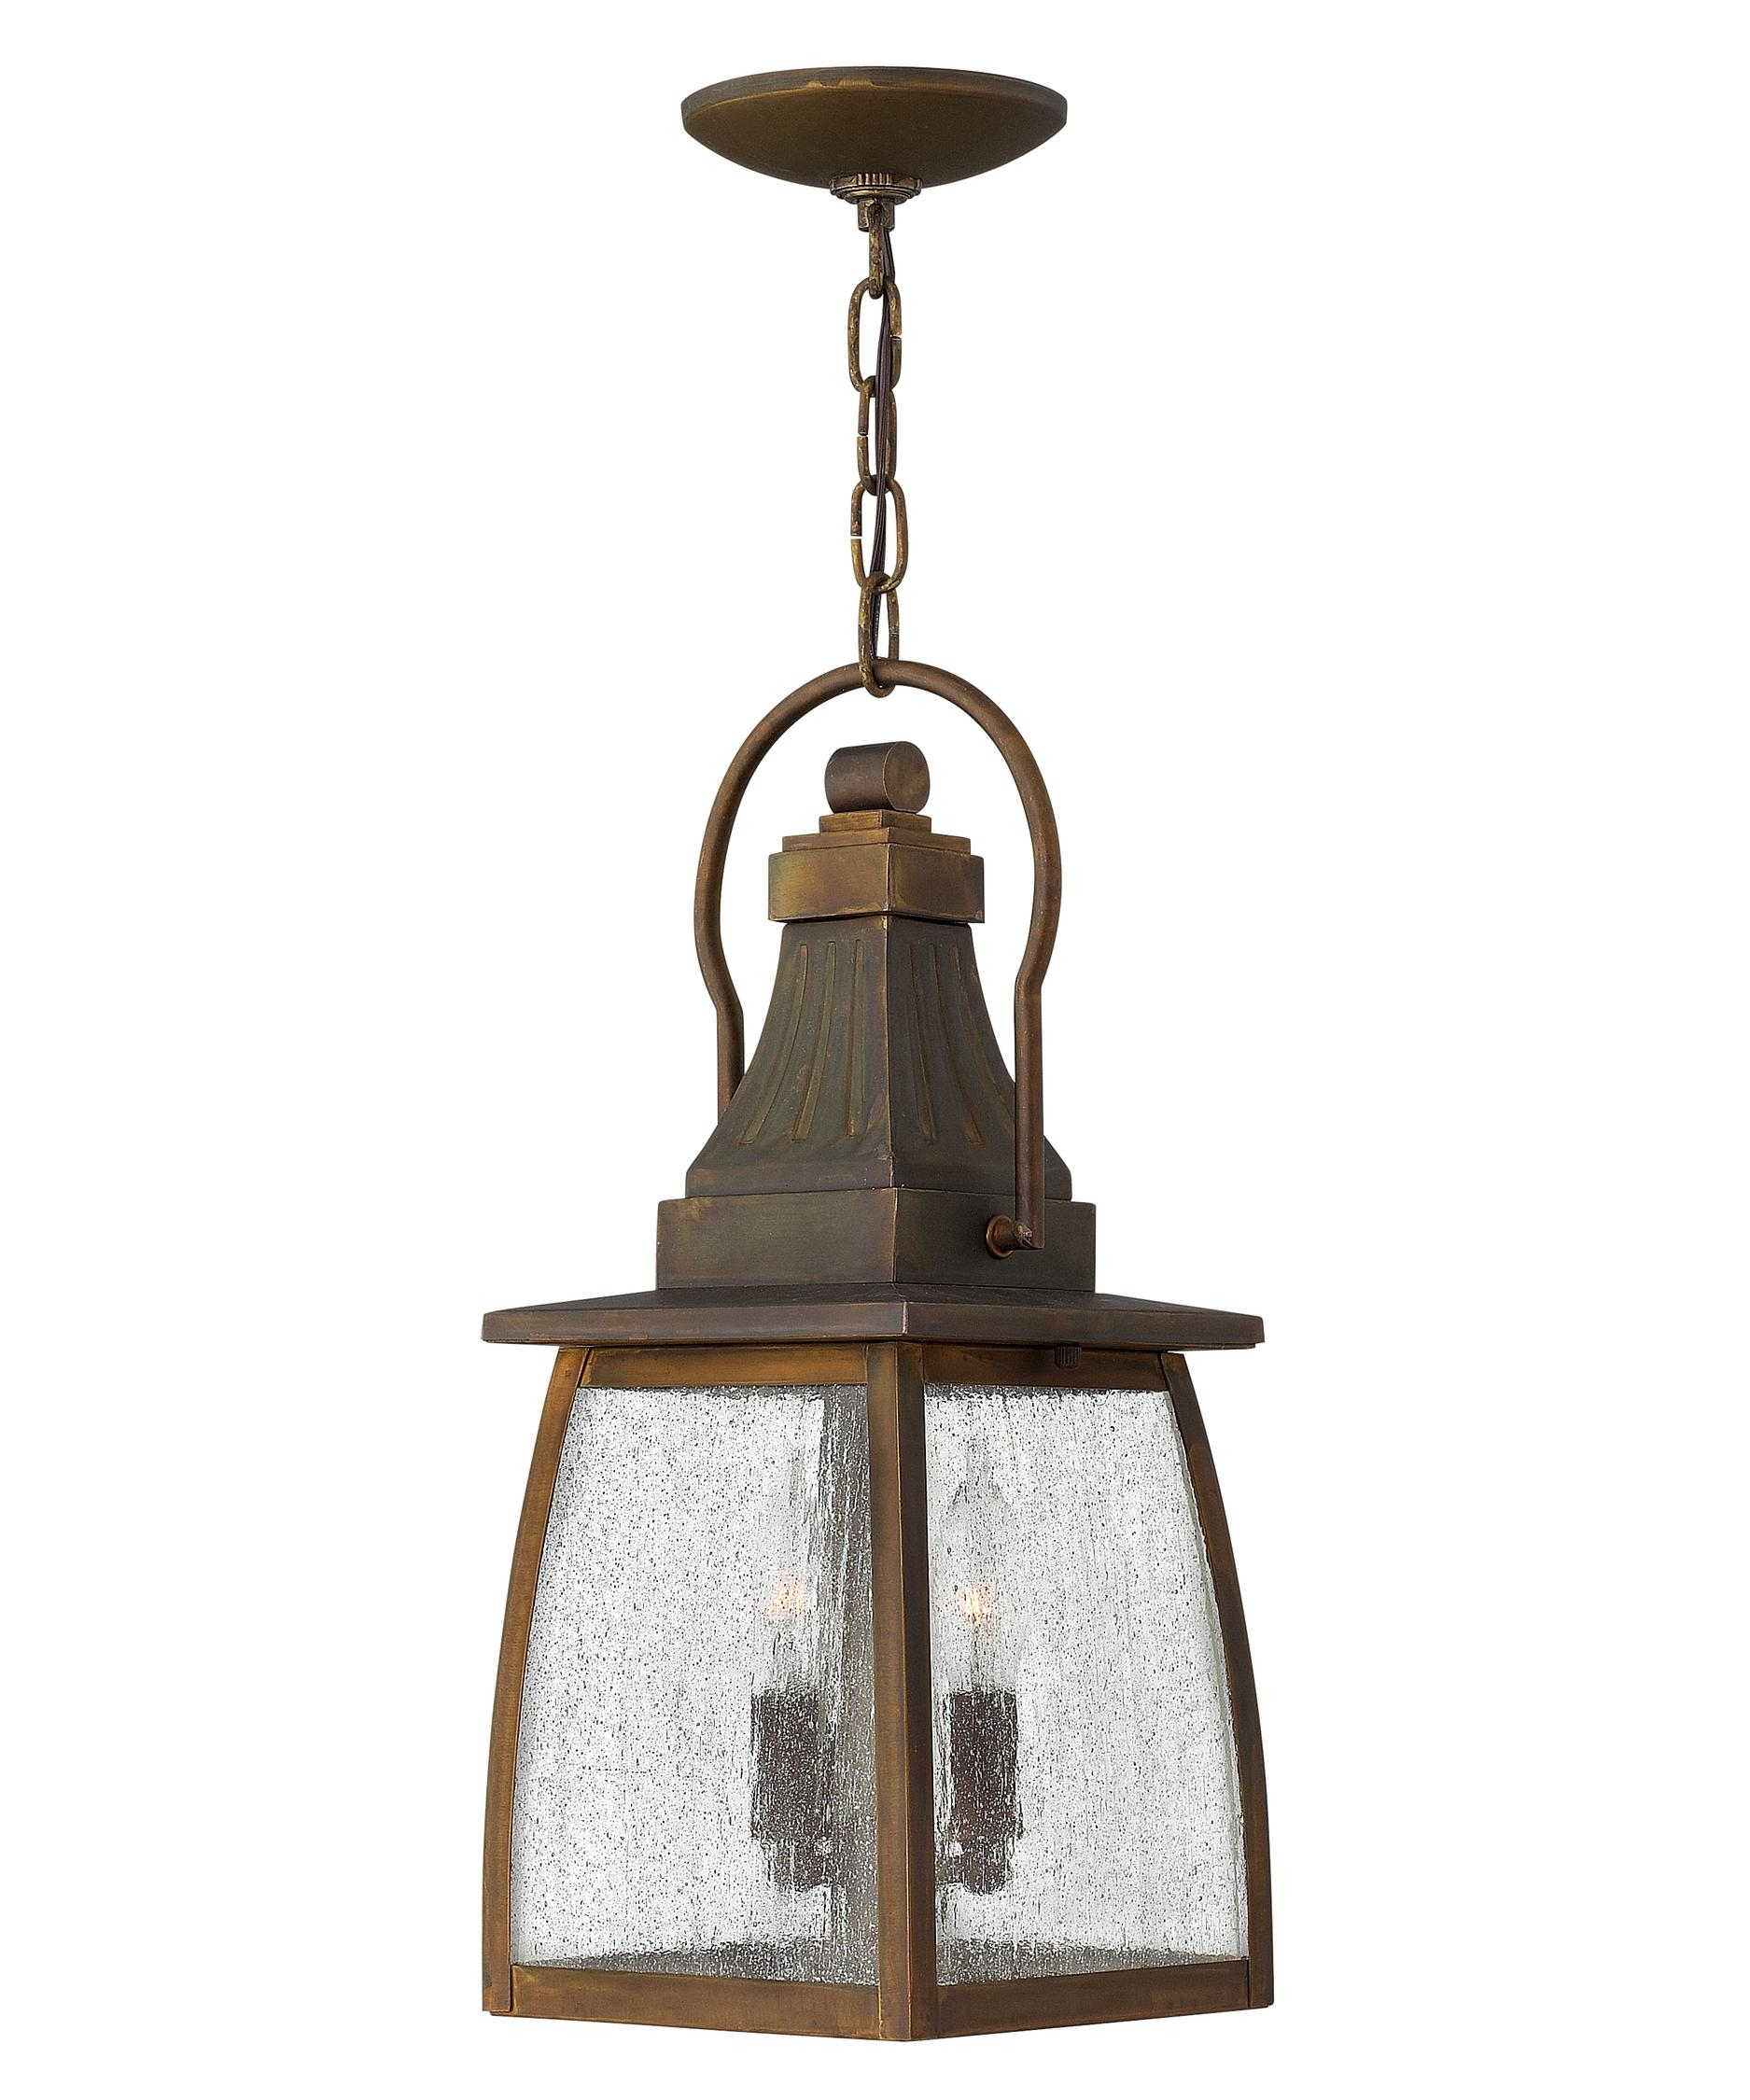 Popular Photo of Contemporary Hanging Porch Hinkley Lighting